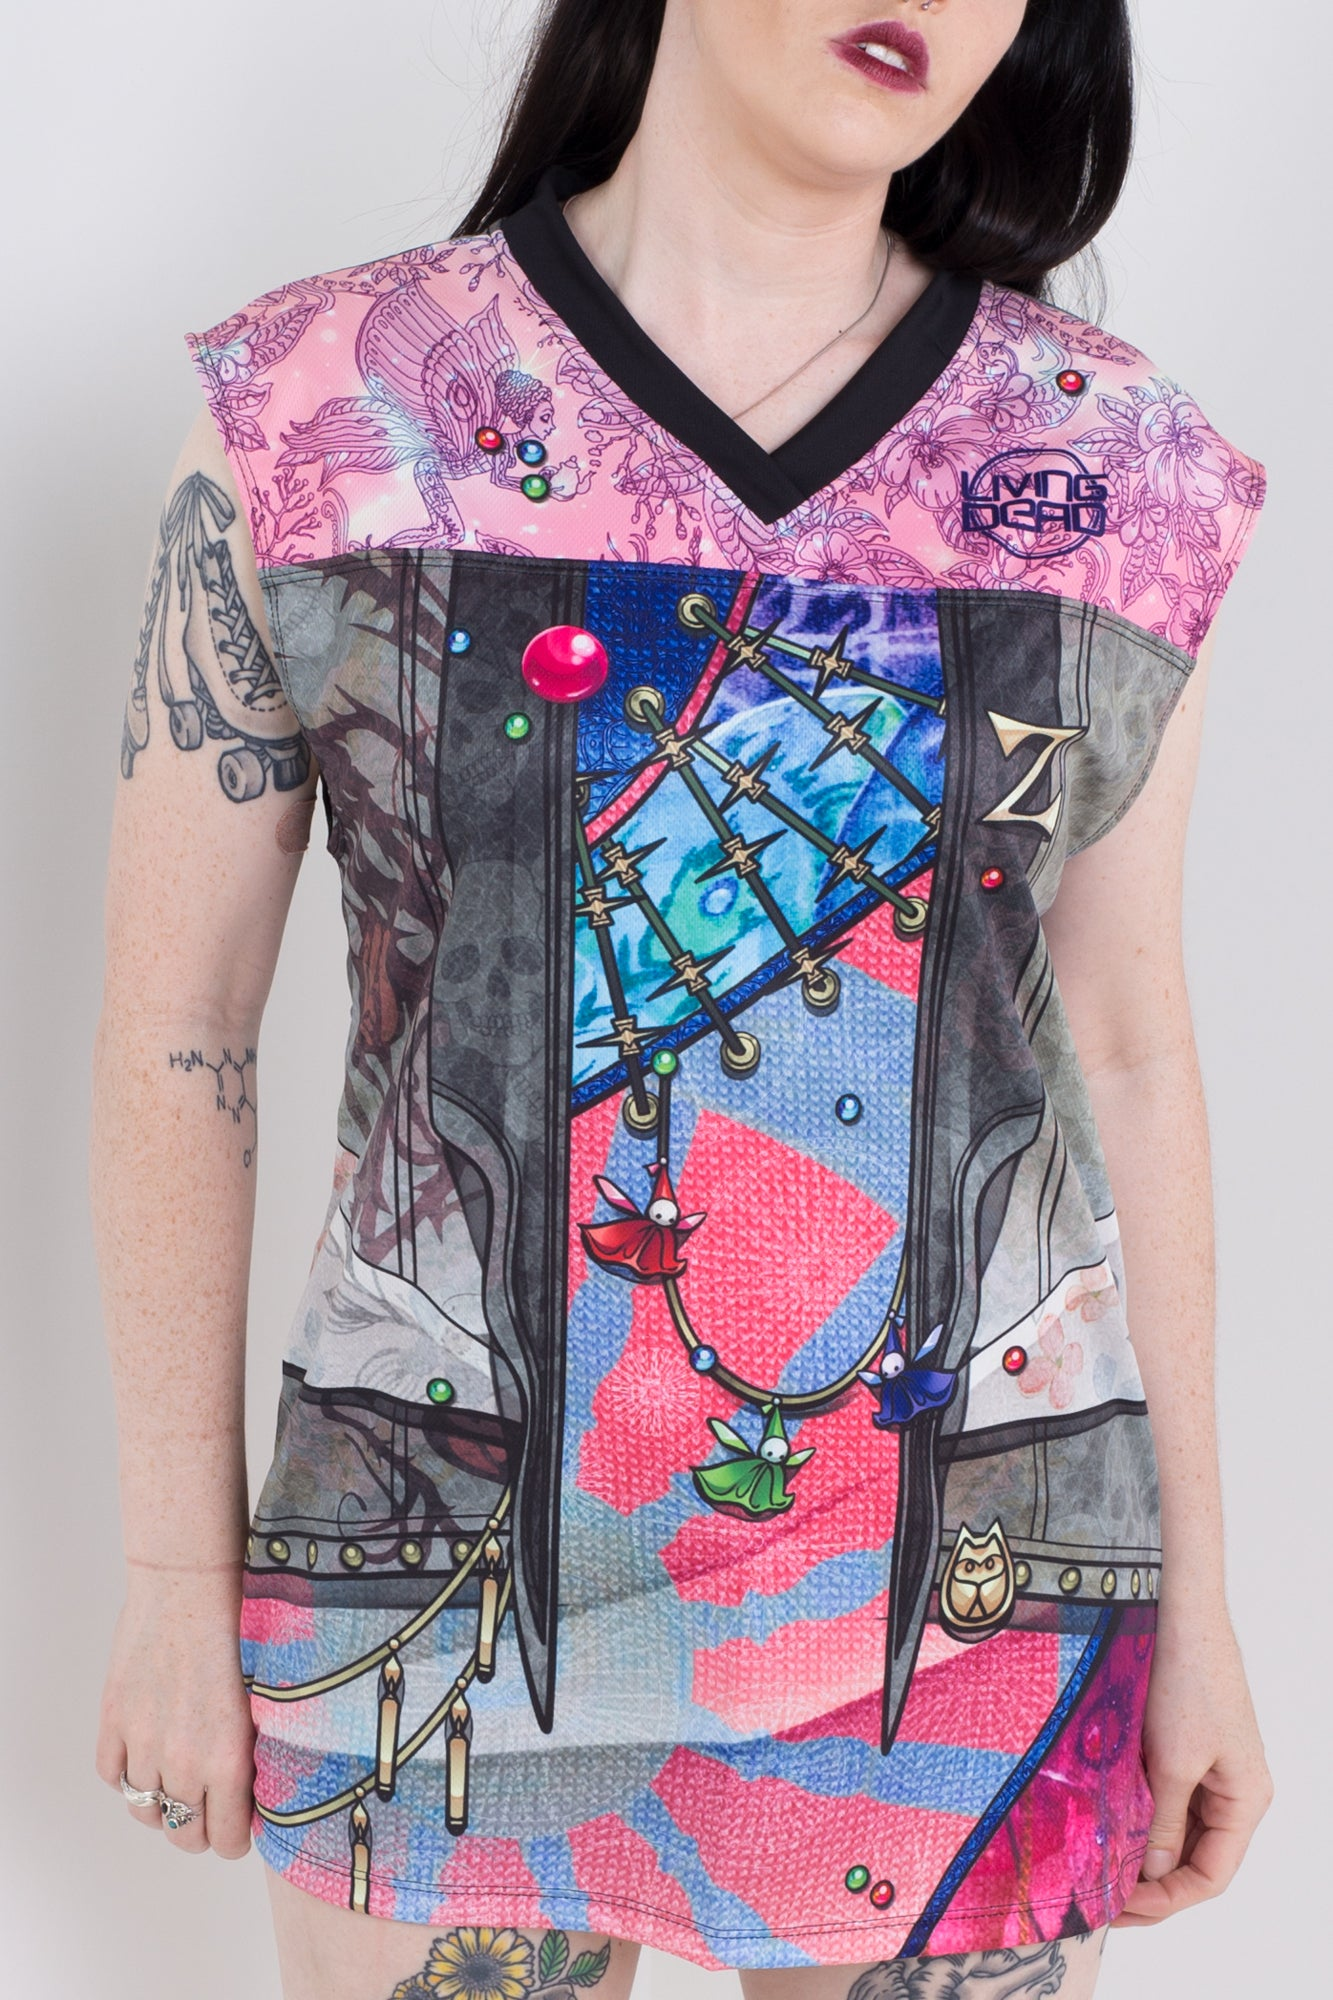 Punk Princess Aurora Sleeveless Hail Mary